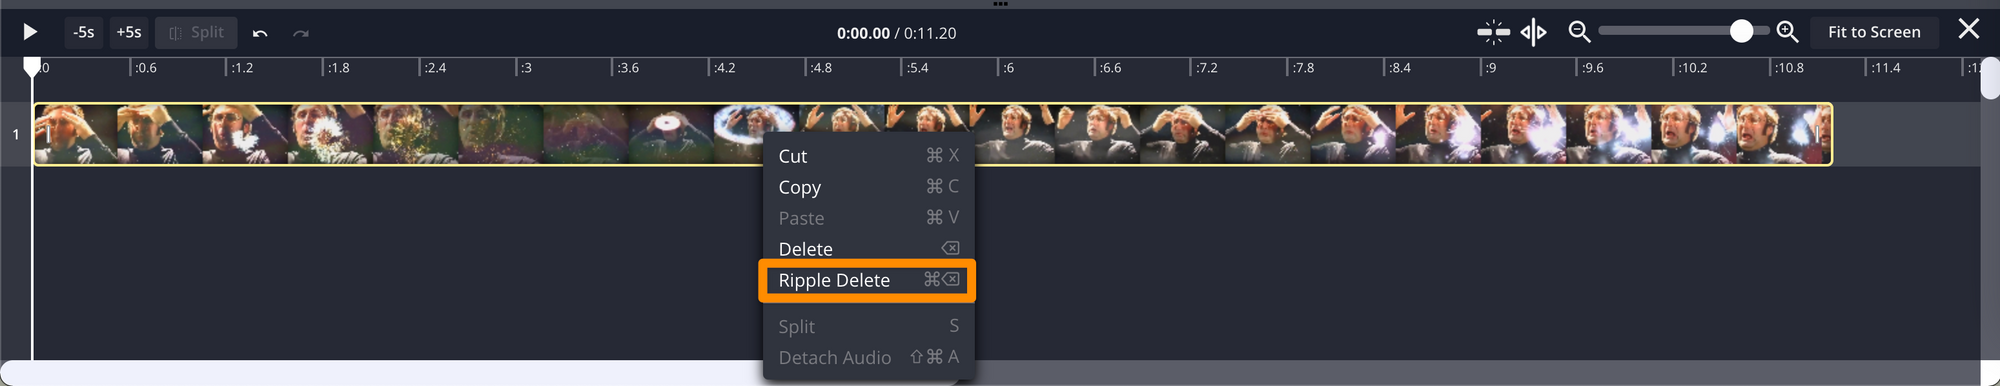 """A screenshot showing """"Ripple Delete"""" as an option in the Timeline dropdown menu."""